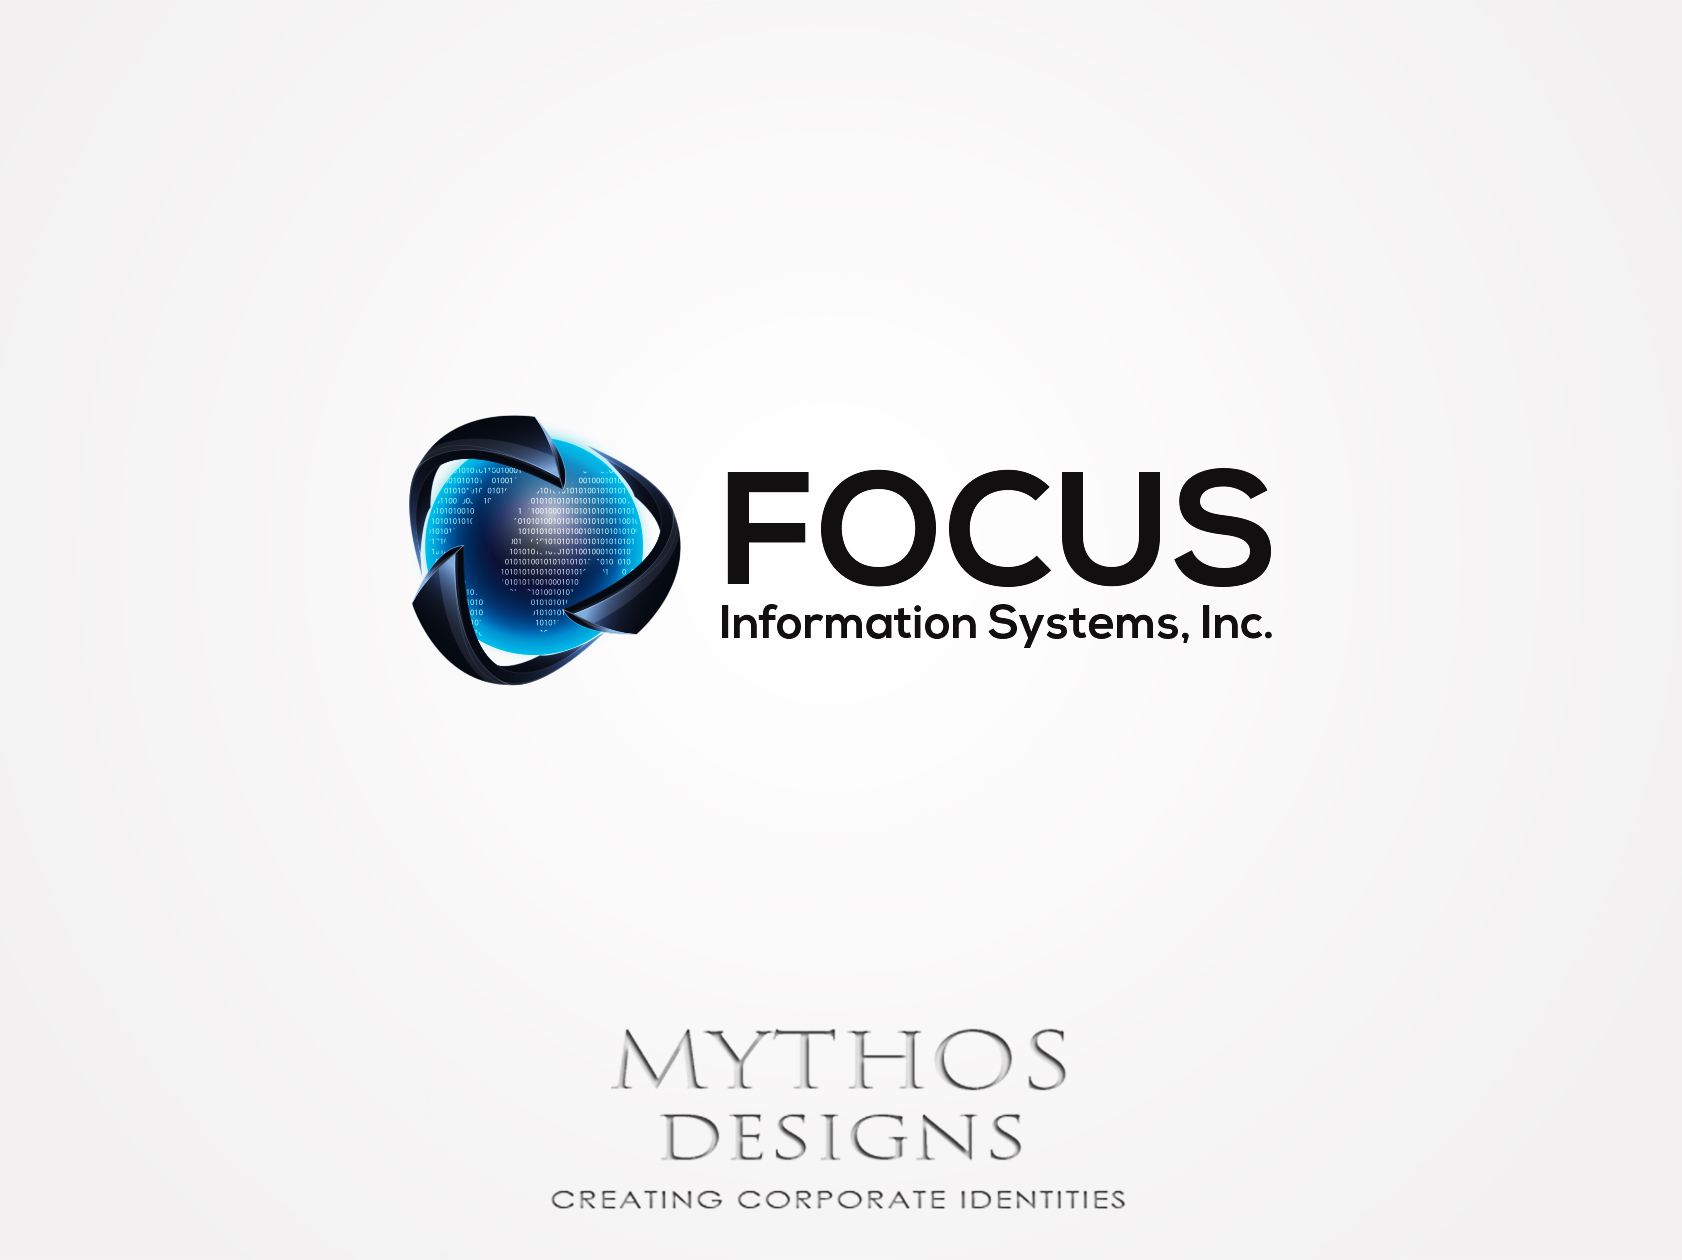 Logo Design by Mythos Designs - Entry No. 43 in the Logo Design Contest Artistic Logo Design for Focus Information Systems, Inc..